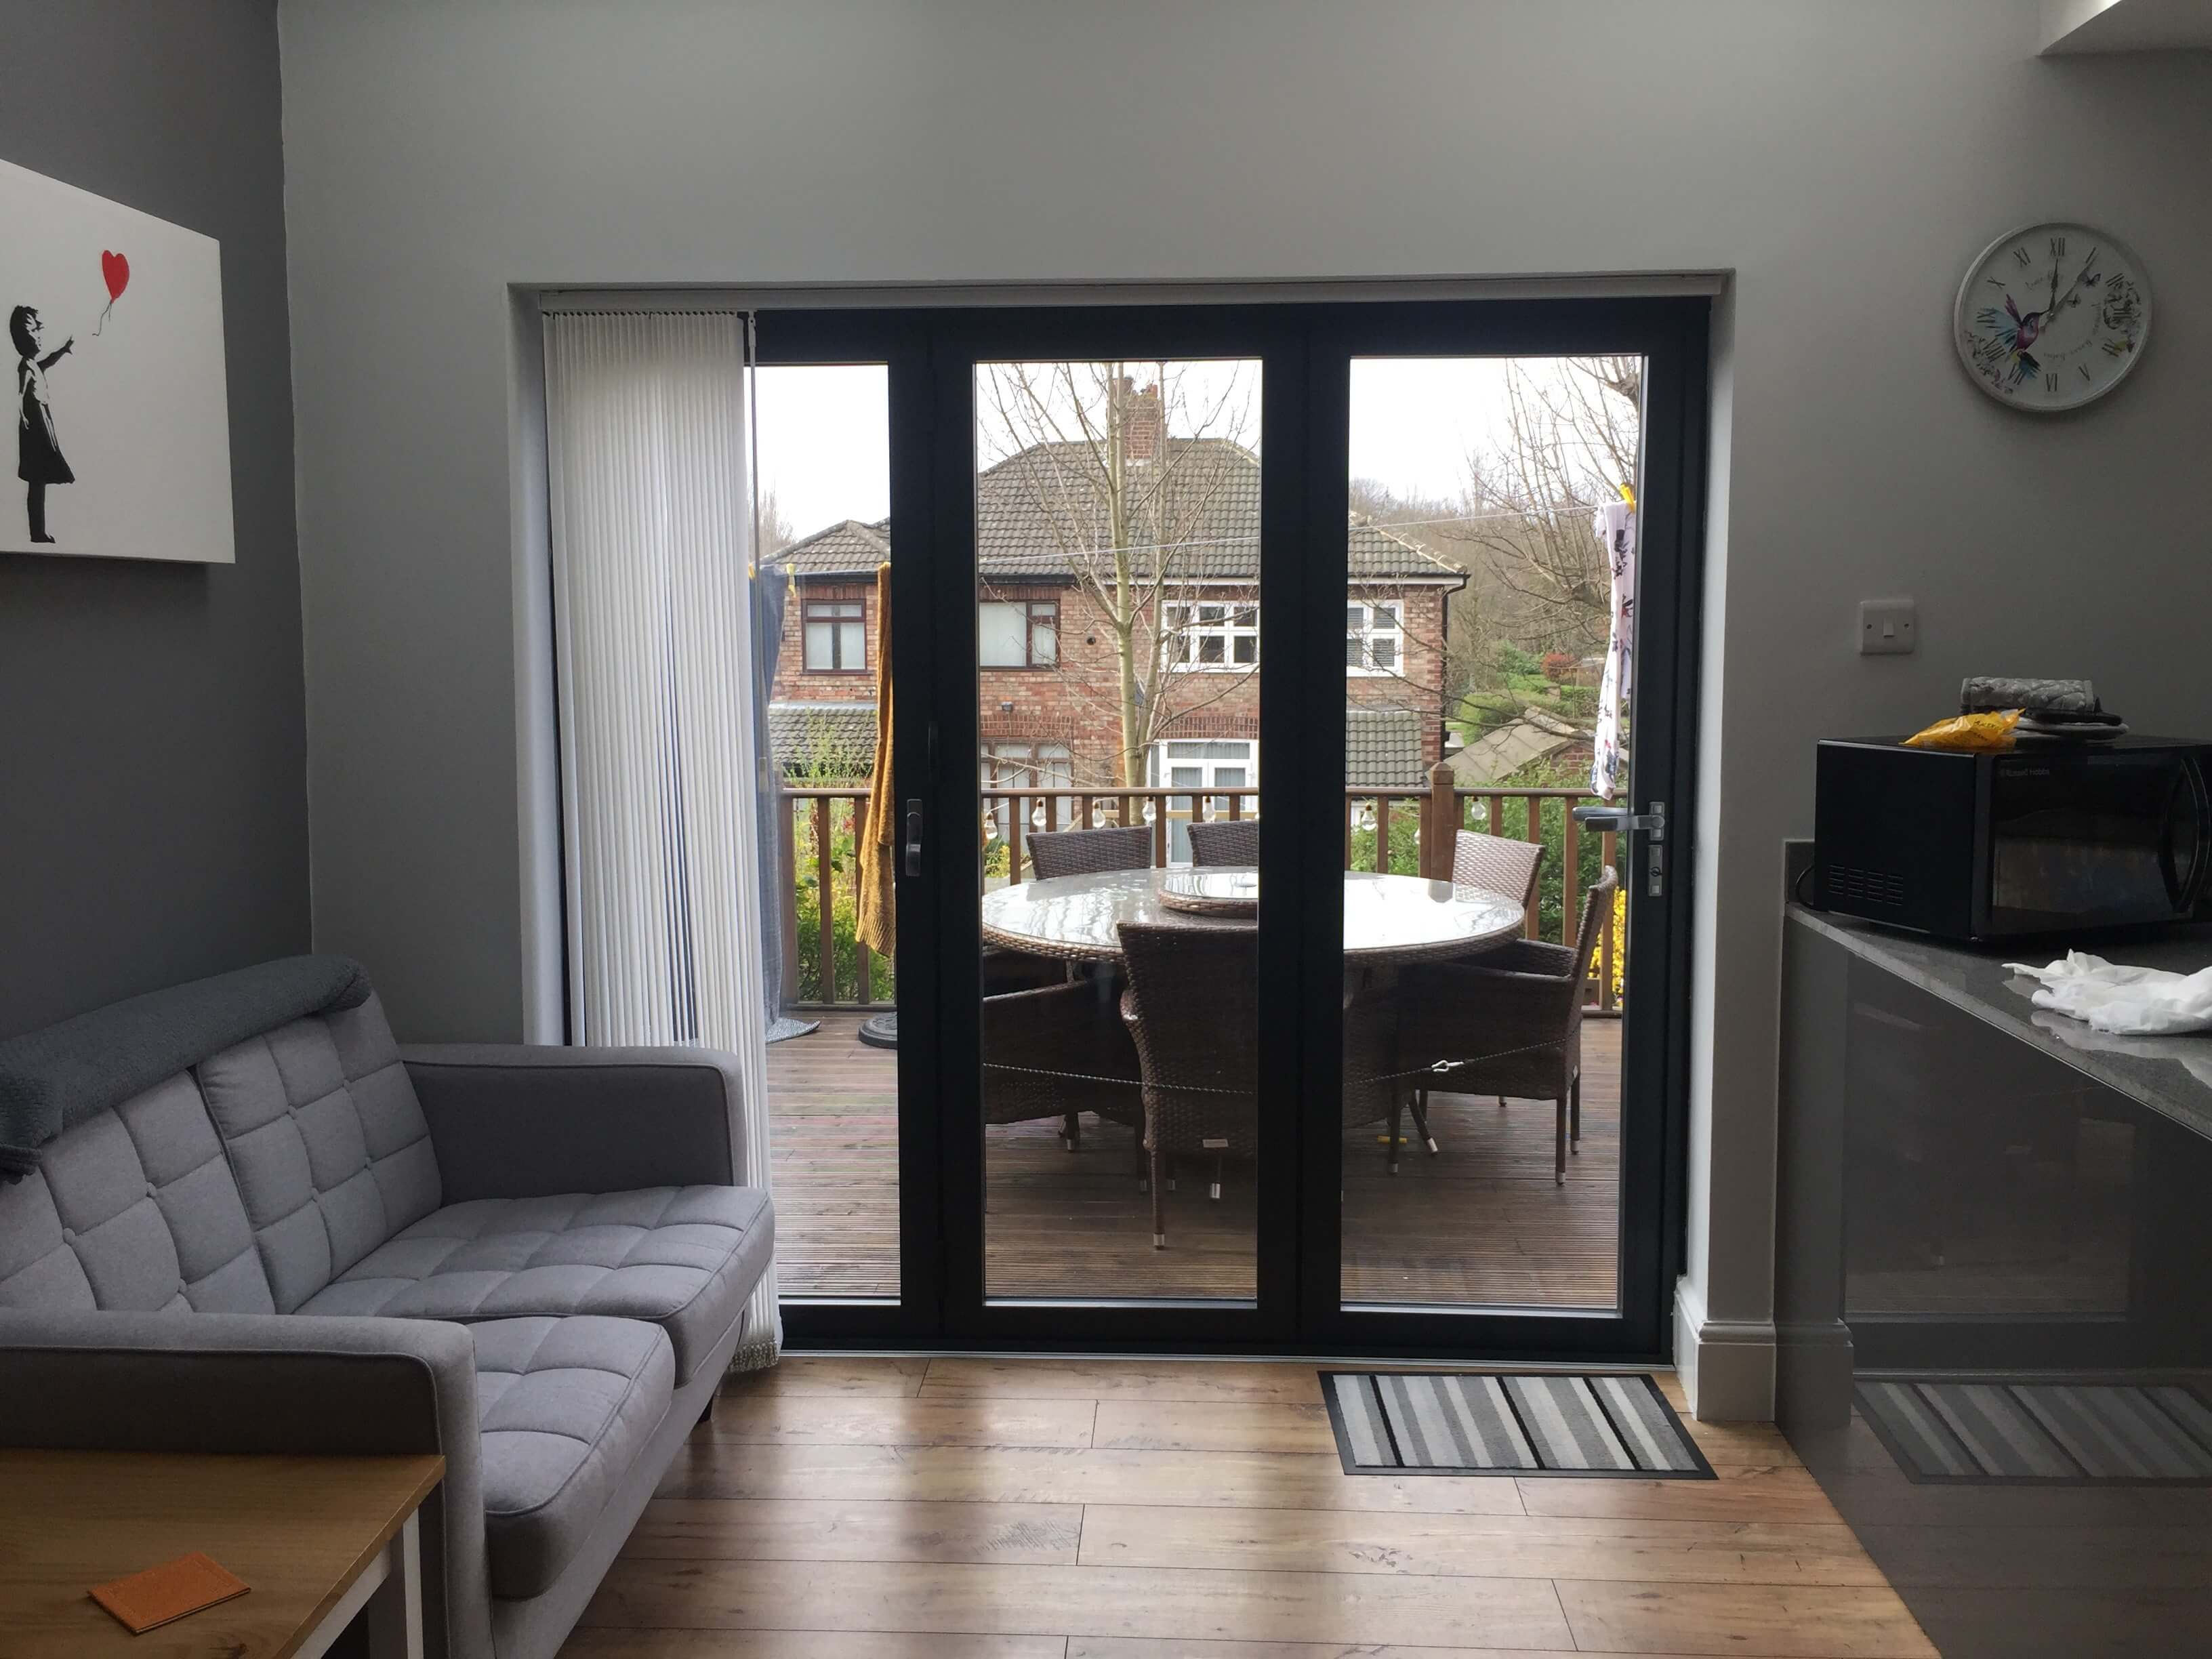 This image shows the internal look of a 3 pane aluminium bi-fold door in Anthracite Grey in Formby, Merseyside.